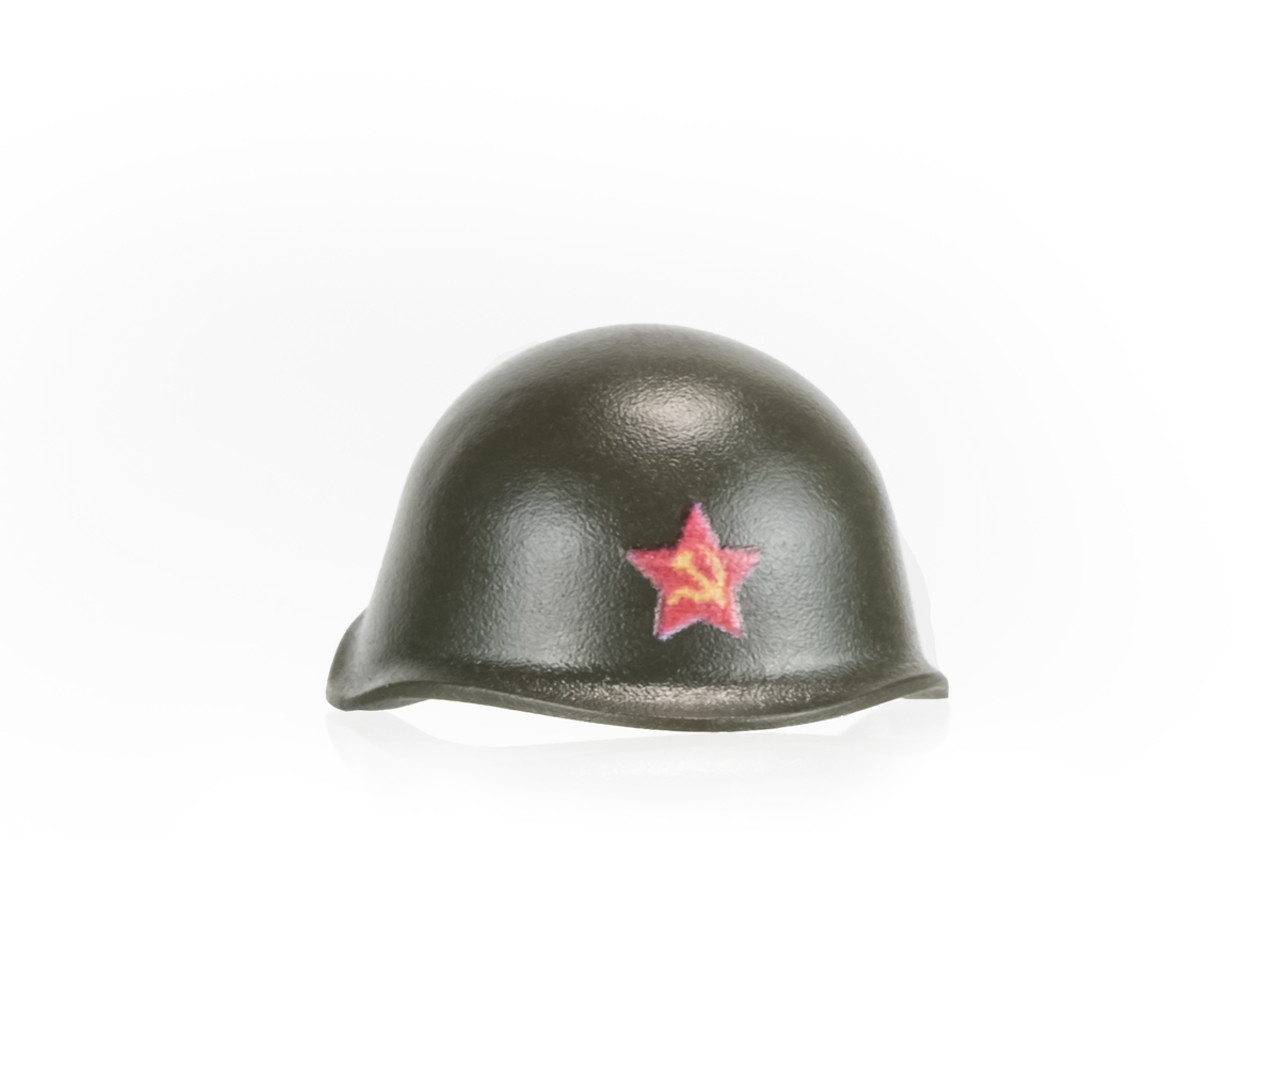 BrickArms SSh-40 Helmet  With Printed Soviet Star